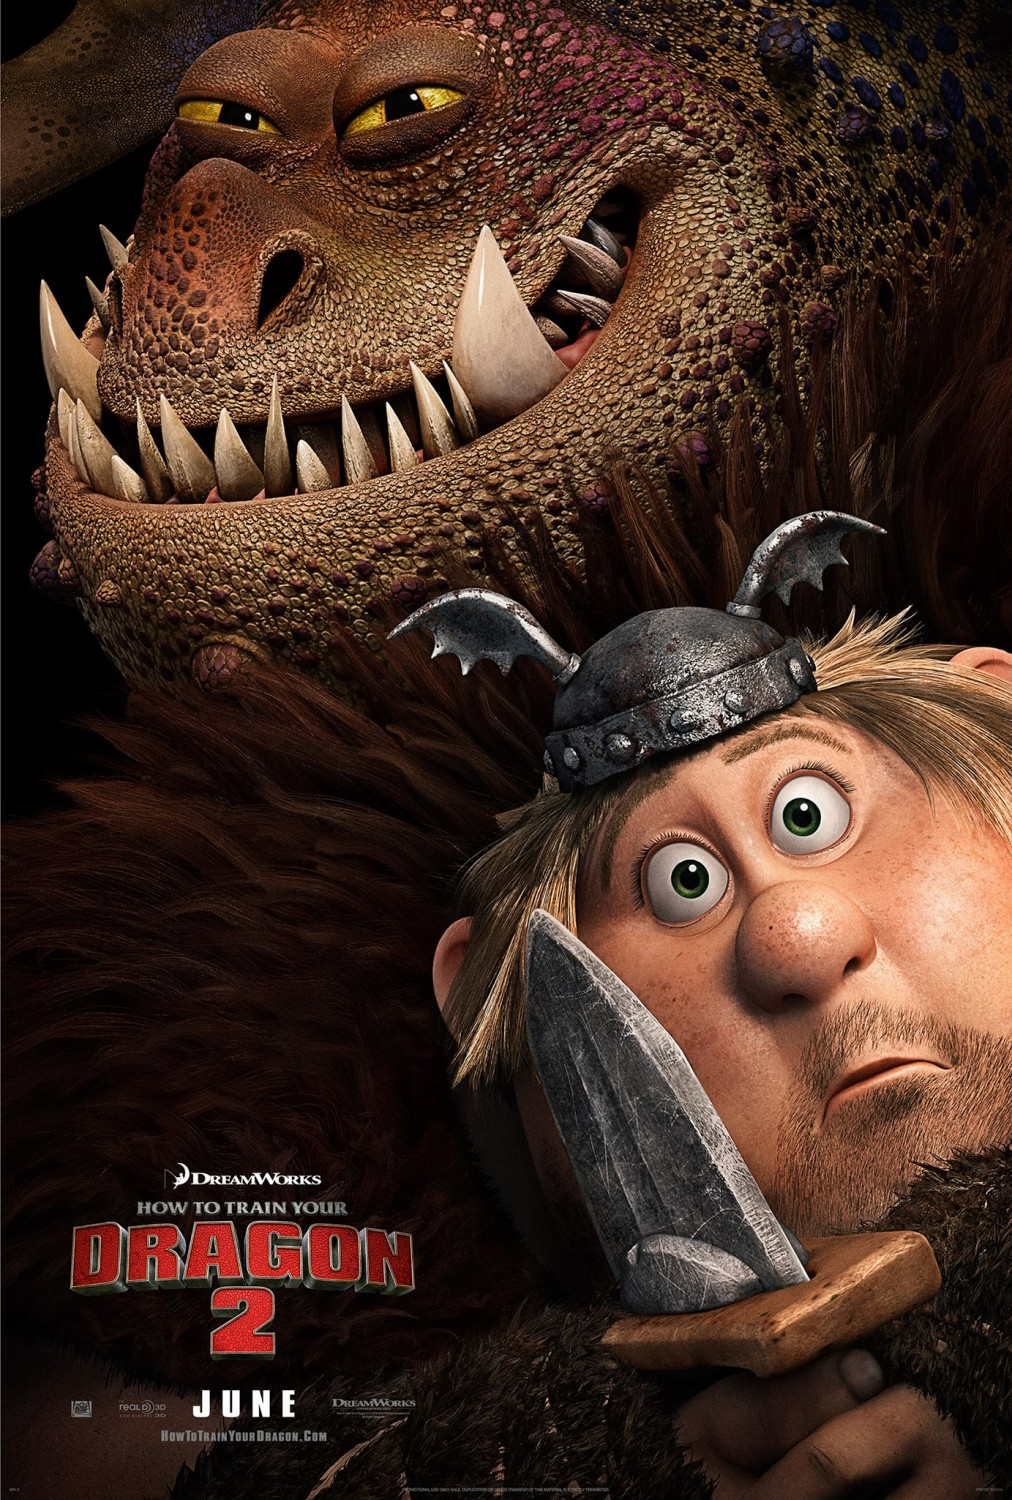 How to Train Your Dragon 2-Official Poster Banner PROMO CHAR XLRG-27JANEIRO2014-01